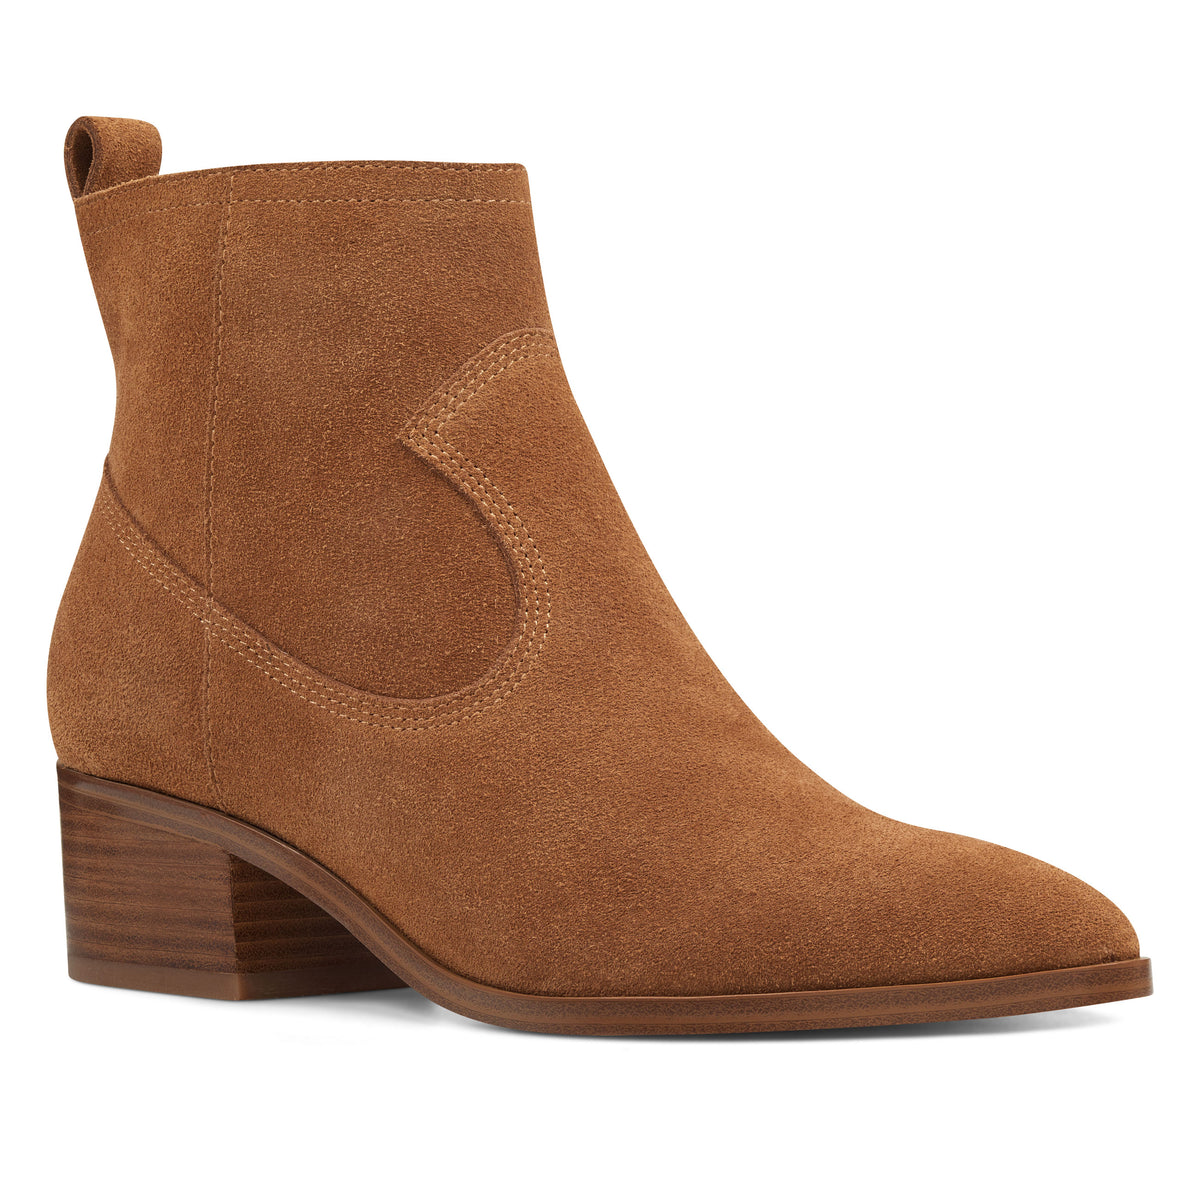 javan-booties-in-cognac-suede